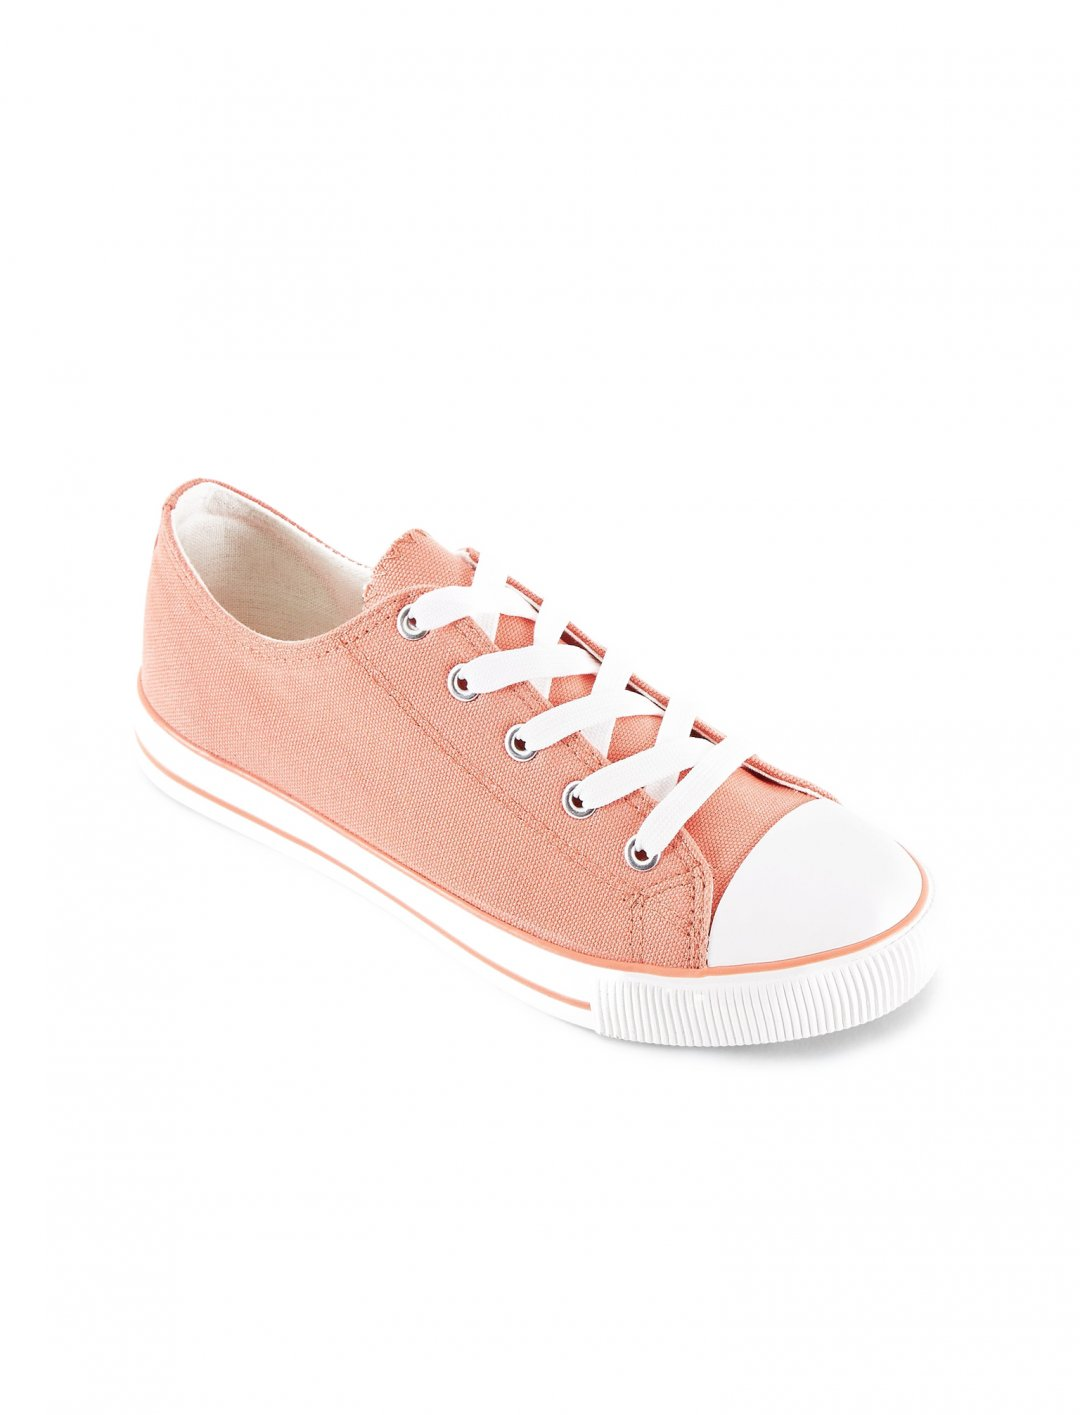 "New Look Coral Trainers {""id"":12,""product_section_id"":1,""name"":""Shoes"",""order"":12} New Look"